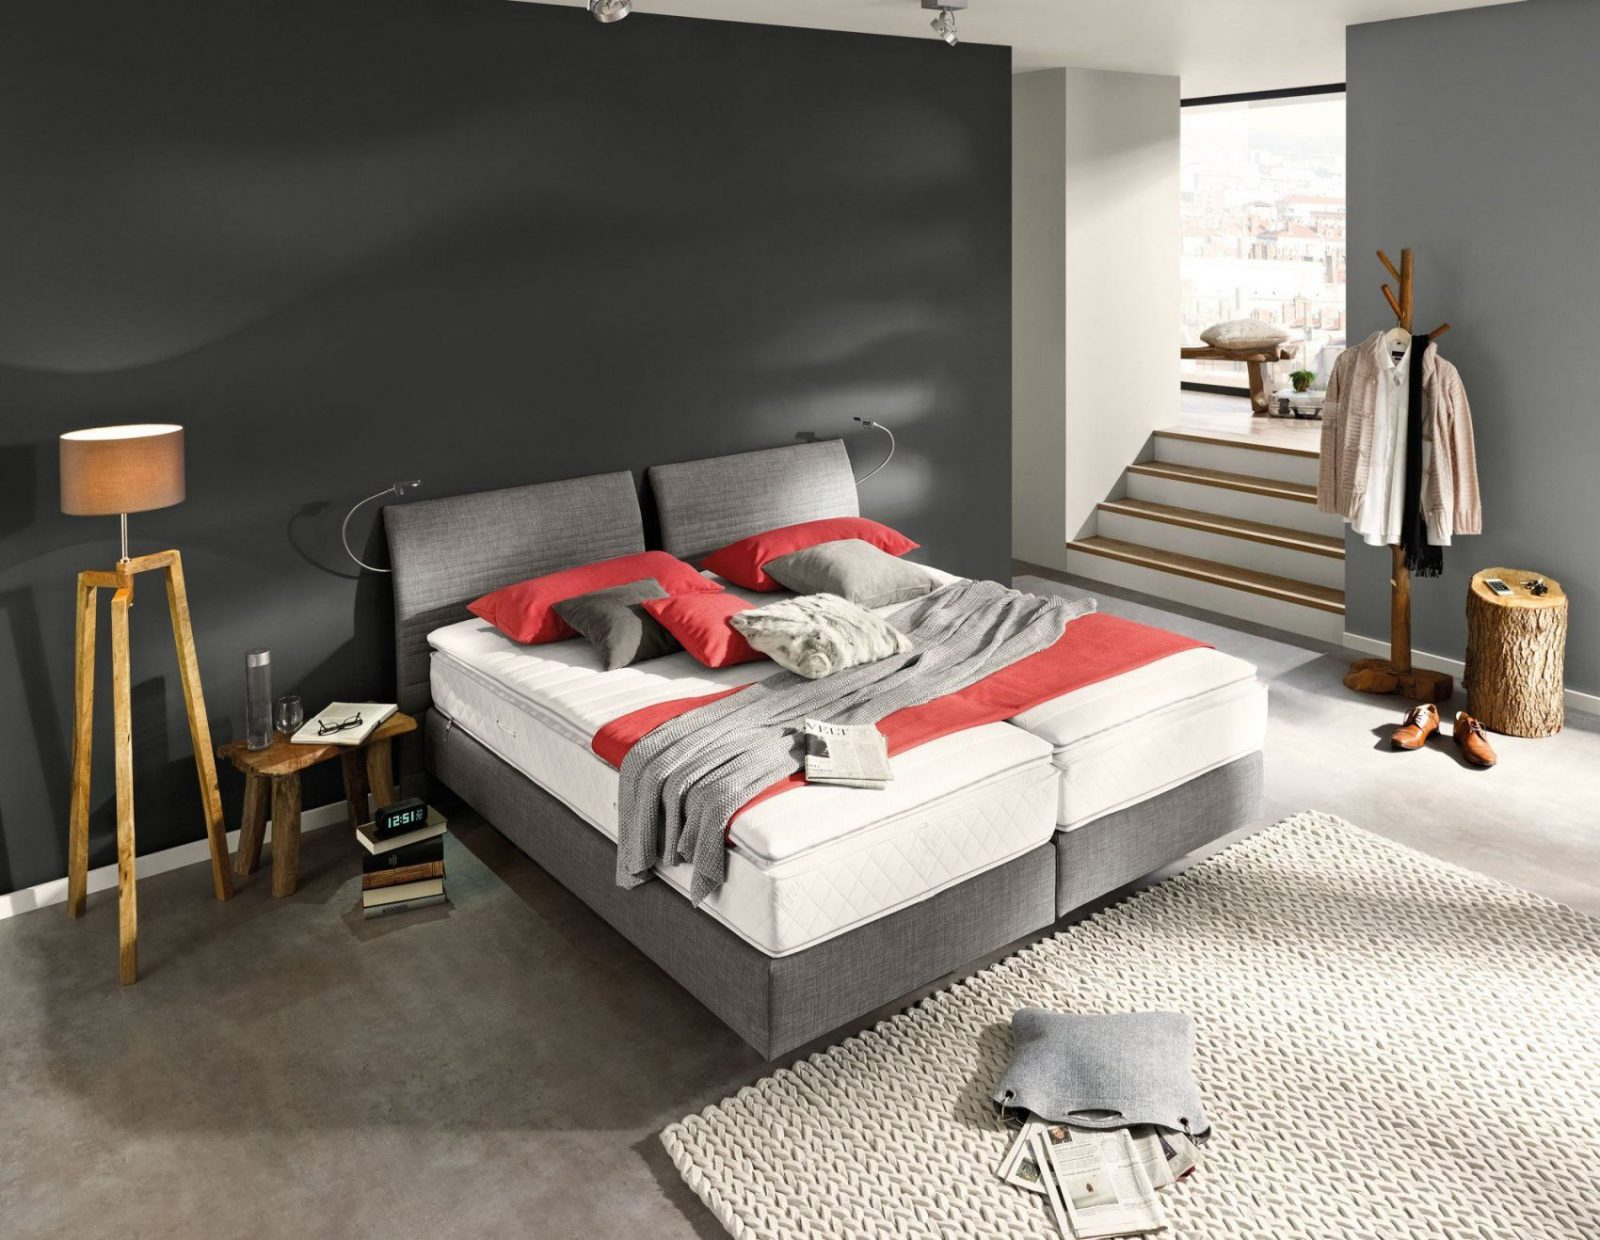 Boxspringbett Mr Evolution Select  Boxspringhighlight Von von Musterring Evolution Boxspringbett Bild